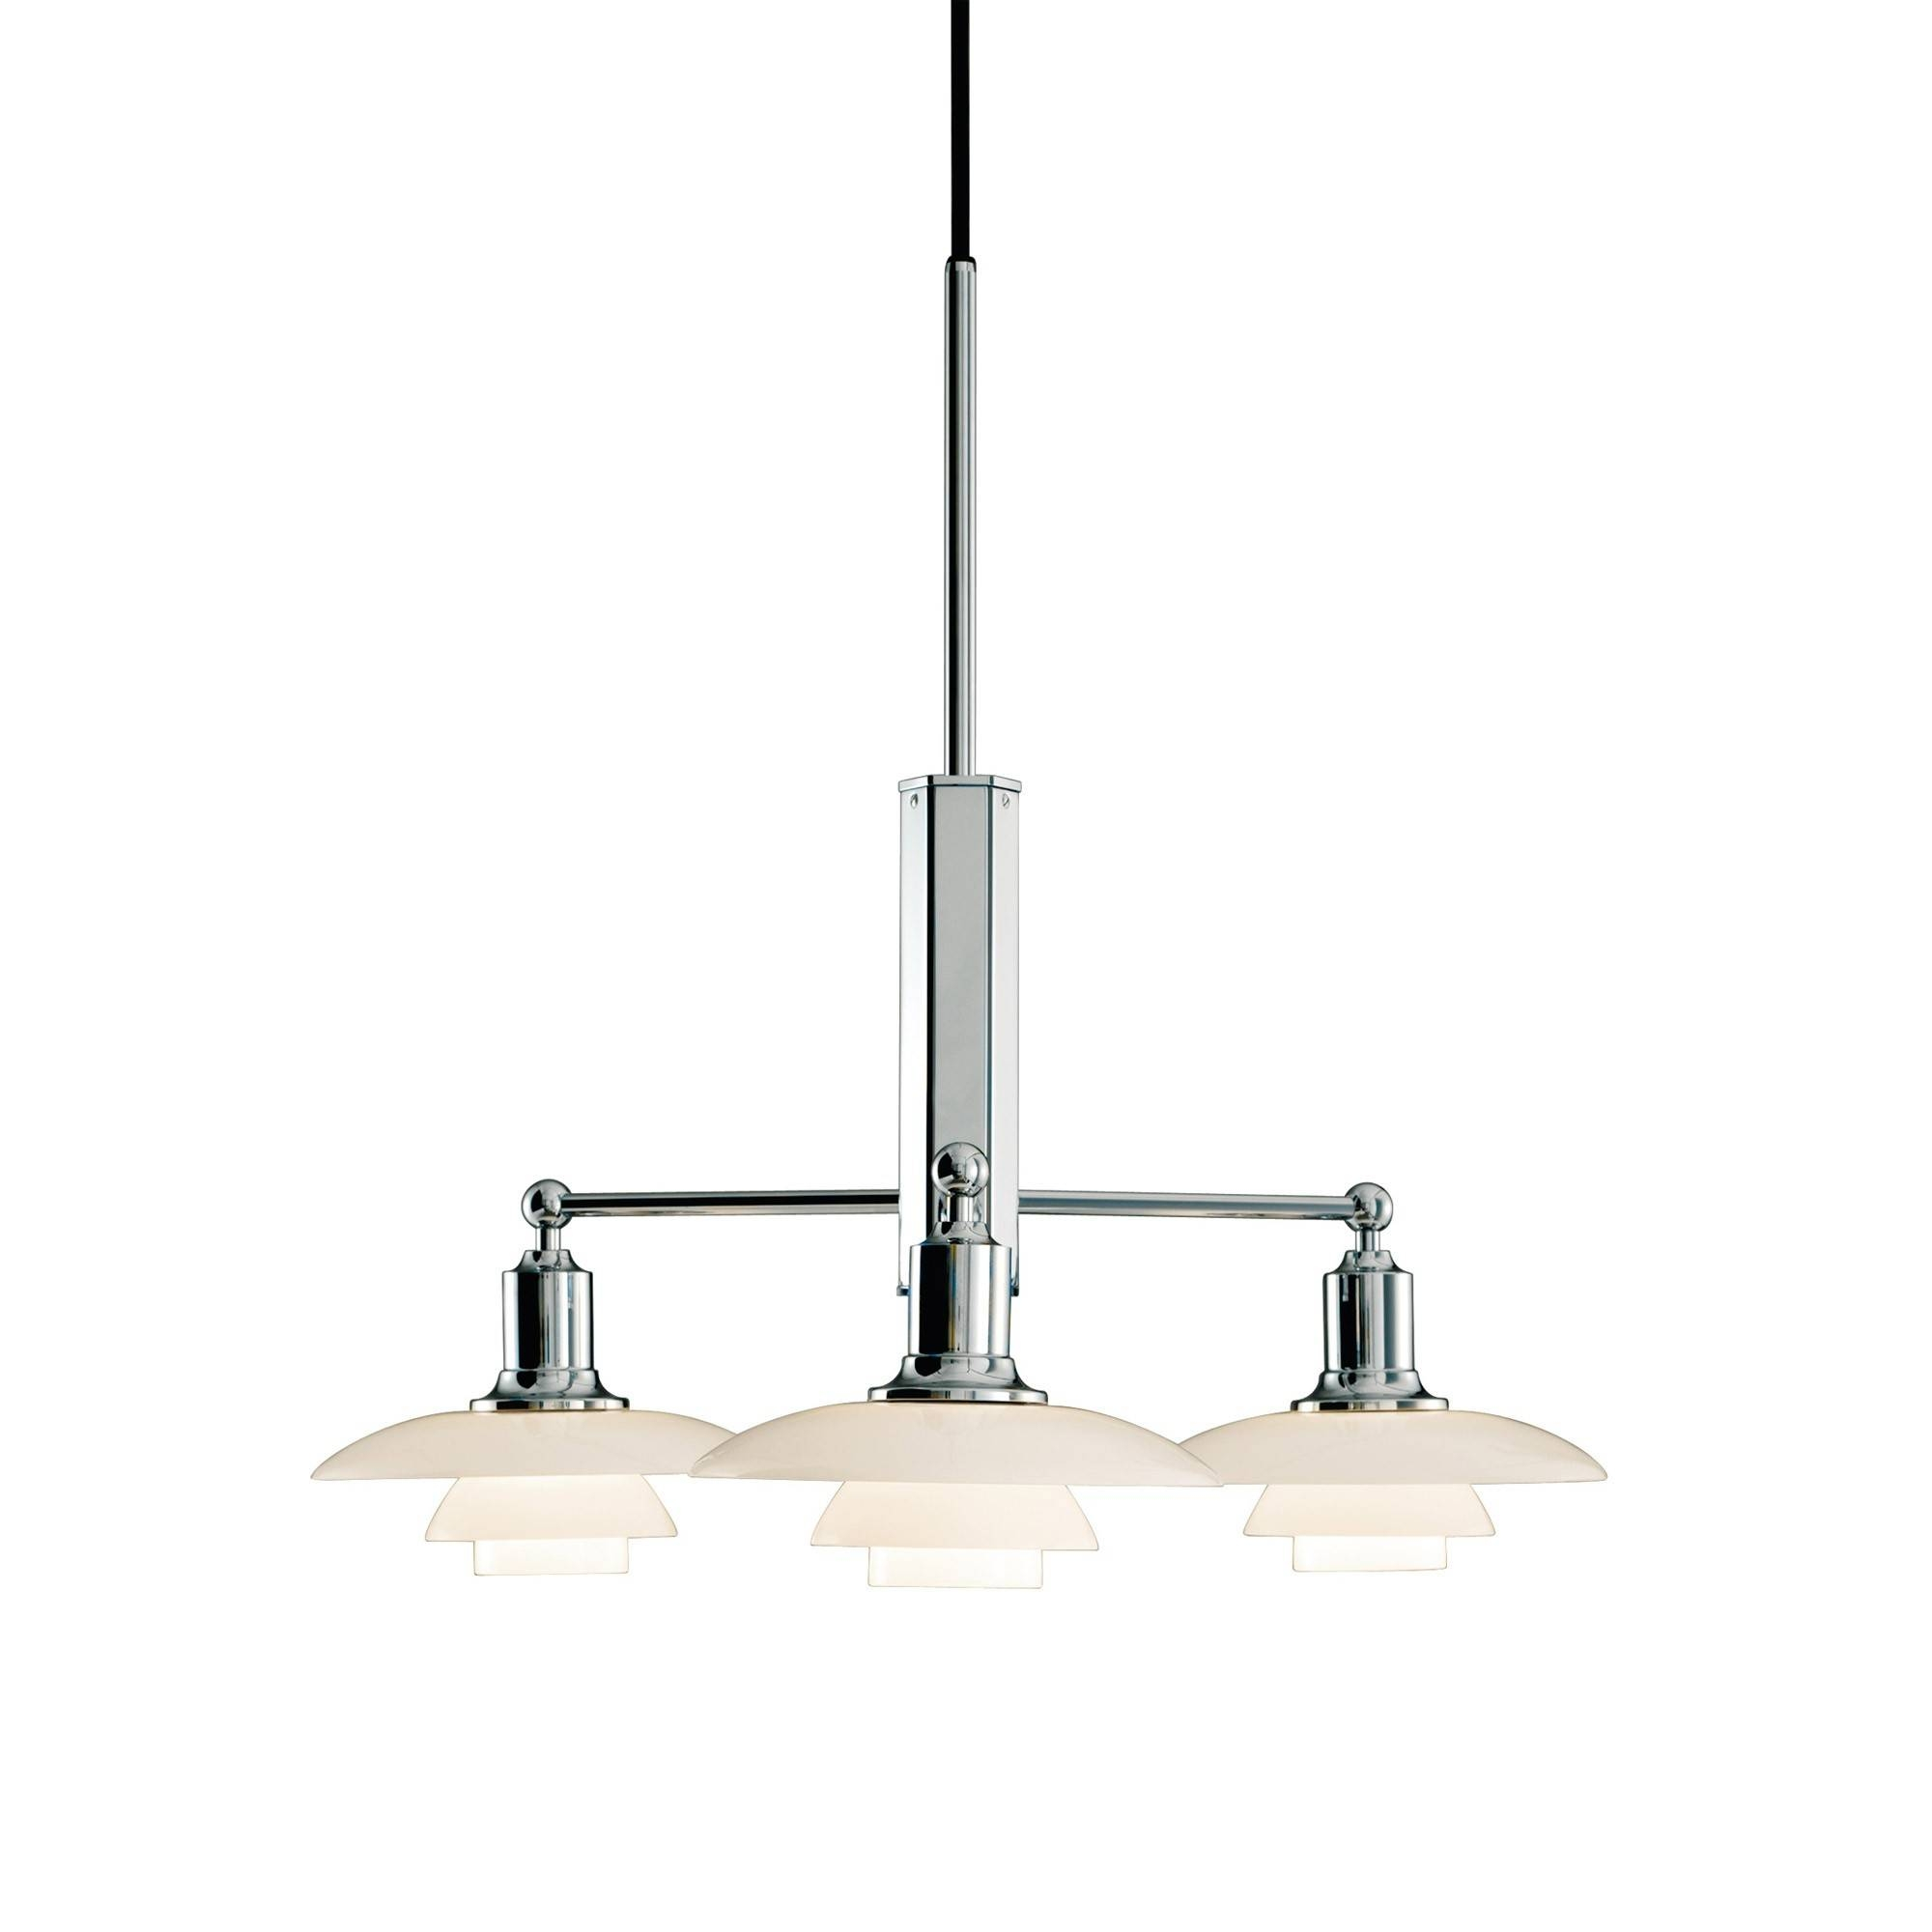 Ph 2/1 Stem Fitting Pendant Lamp | Skandium regarding 3 Lights Pendant Fitter (Image 10 of 15)